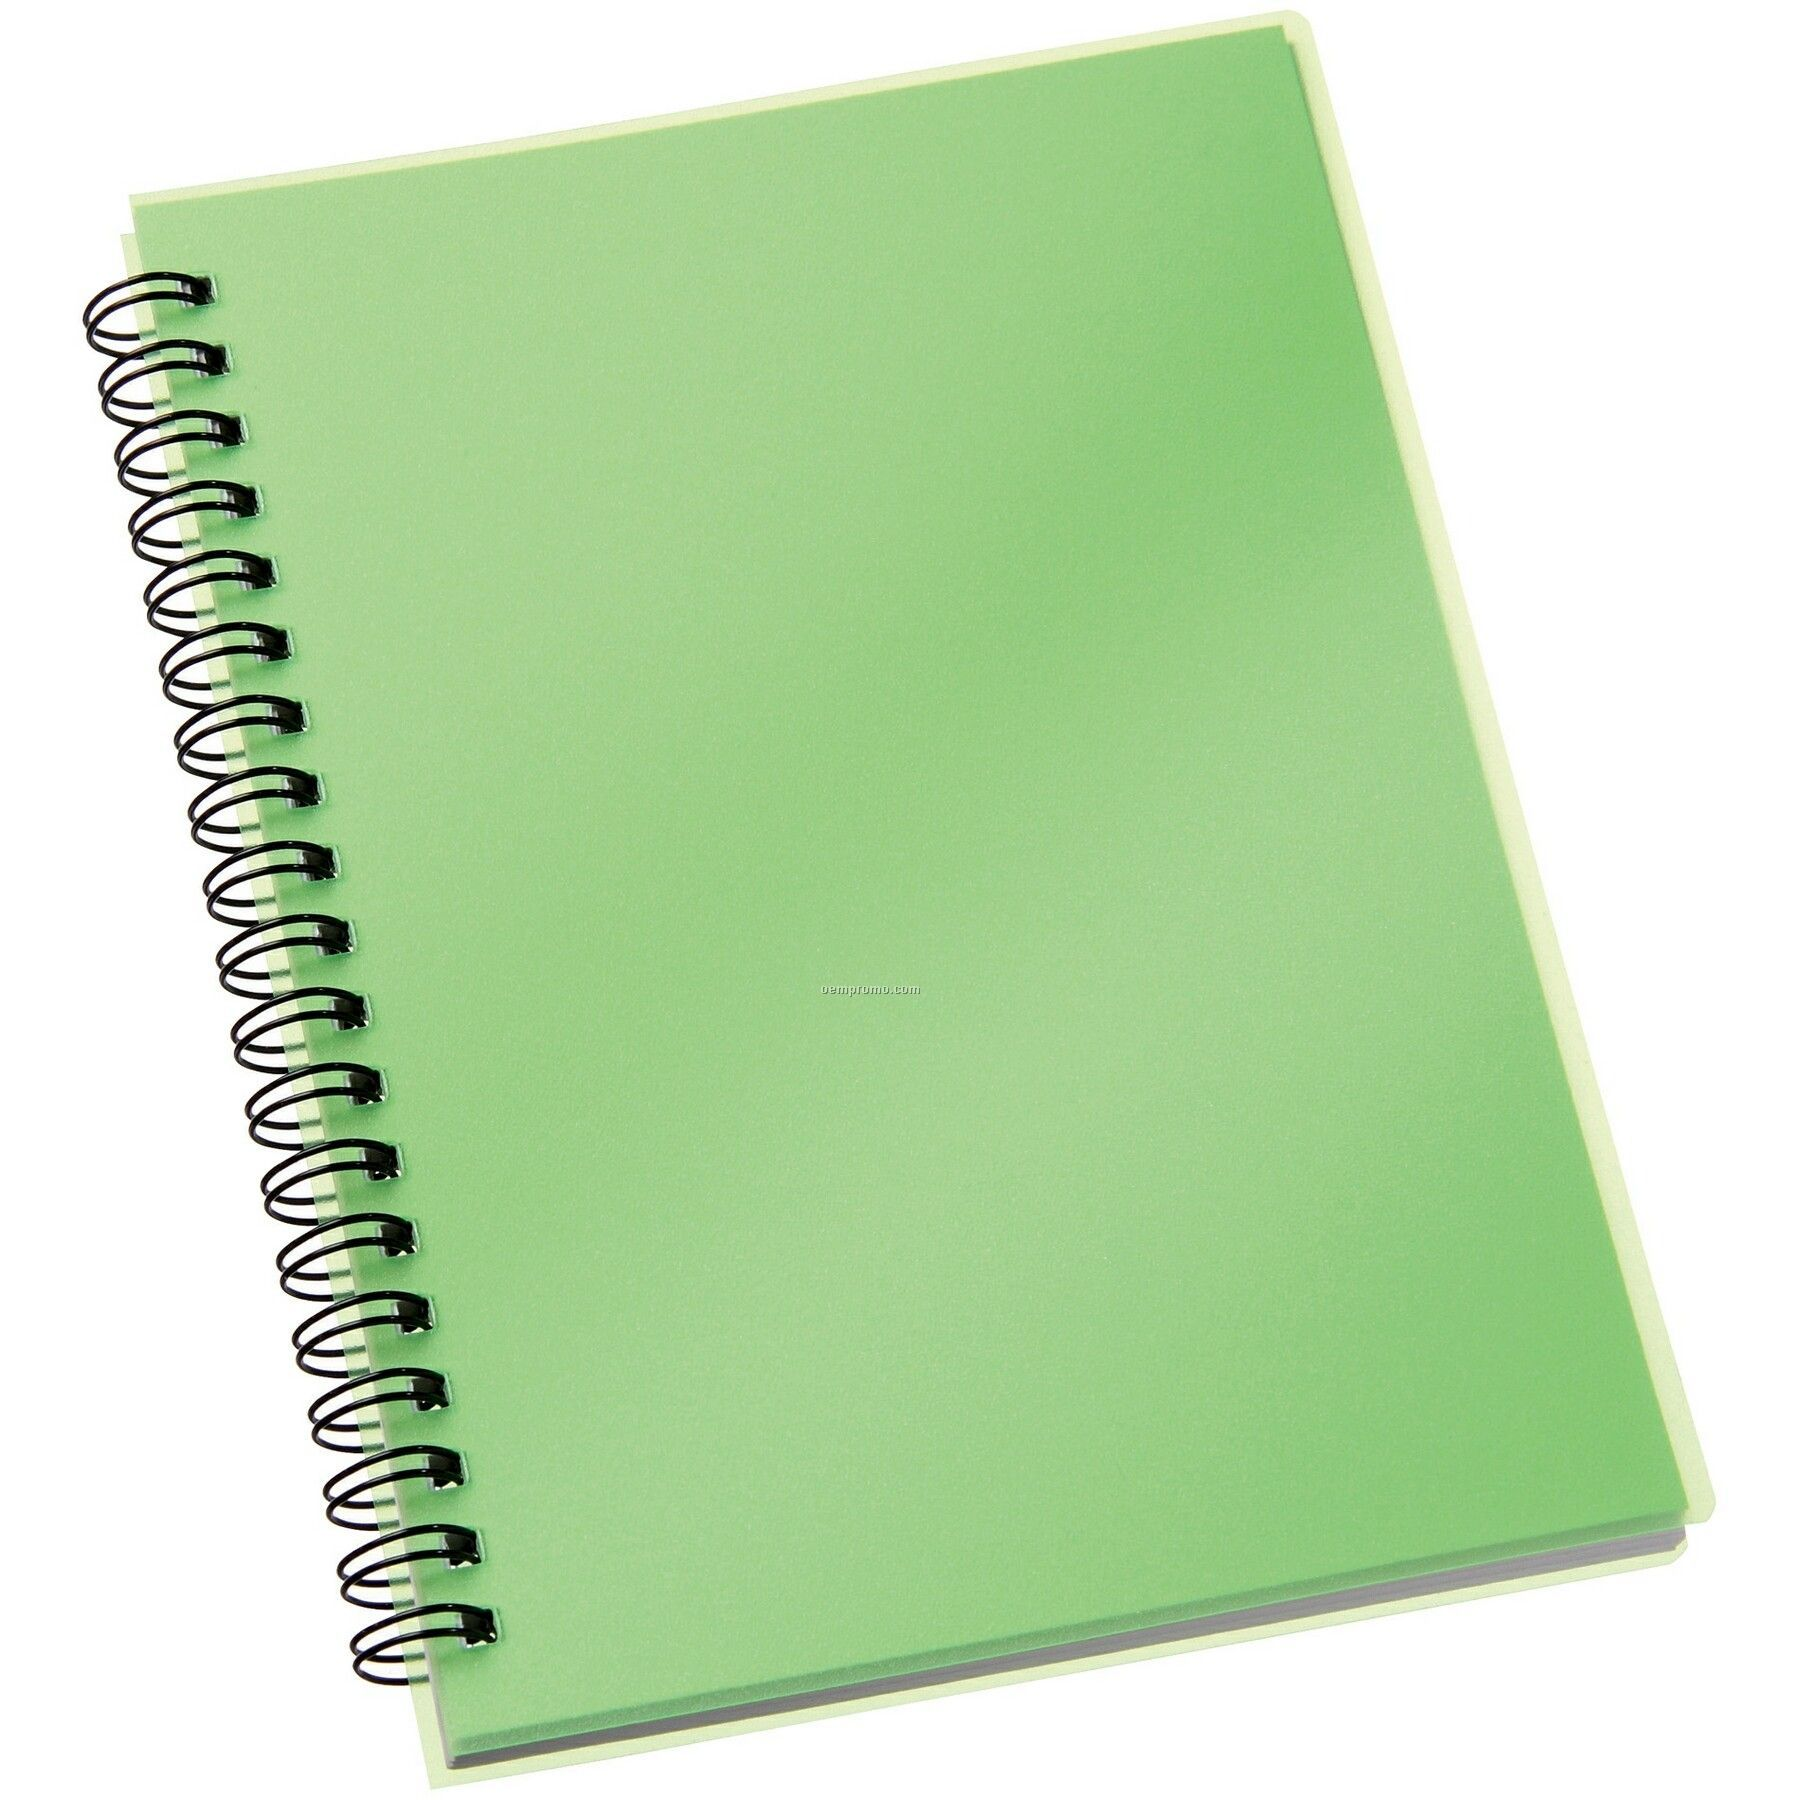 Notebook Pics, Technology Collection